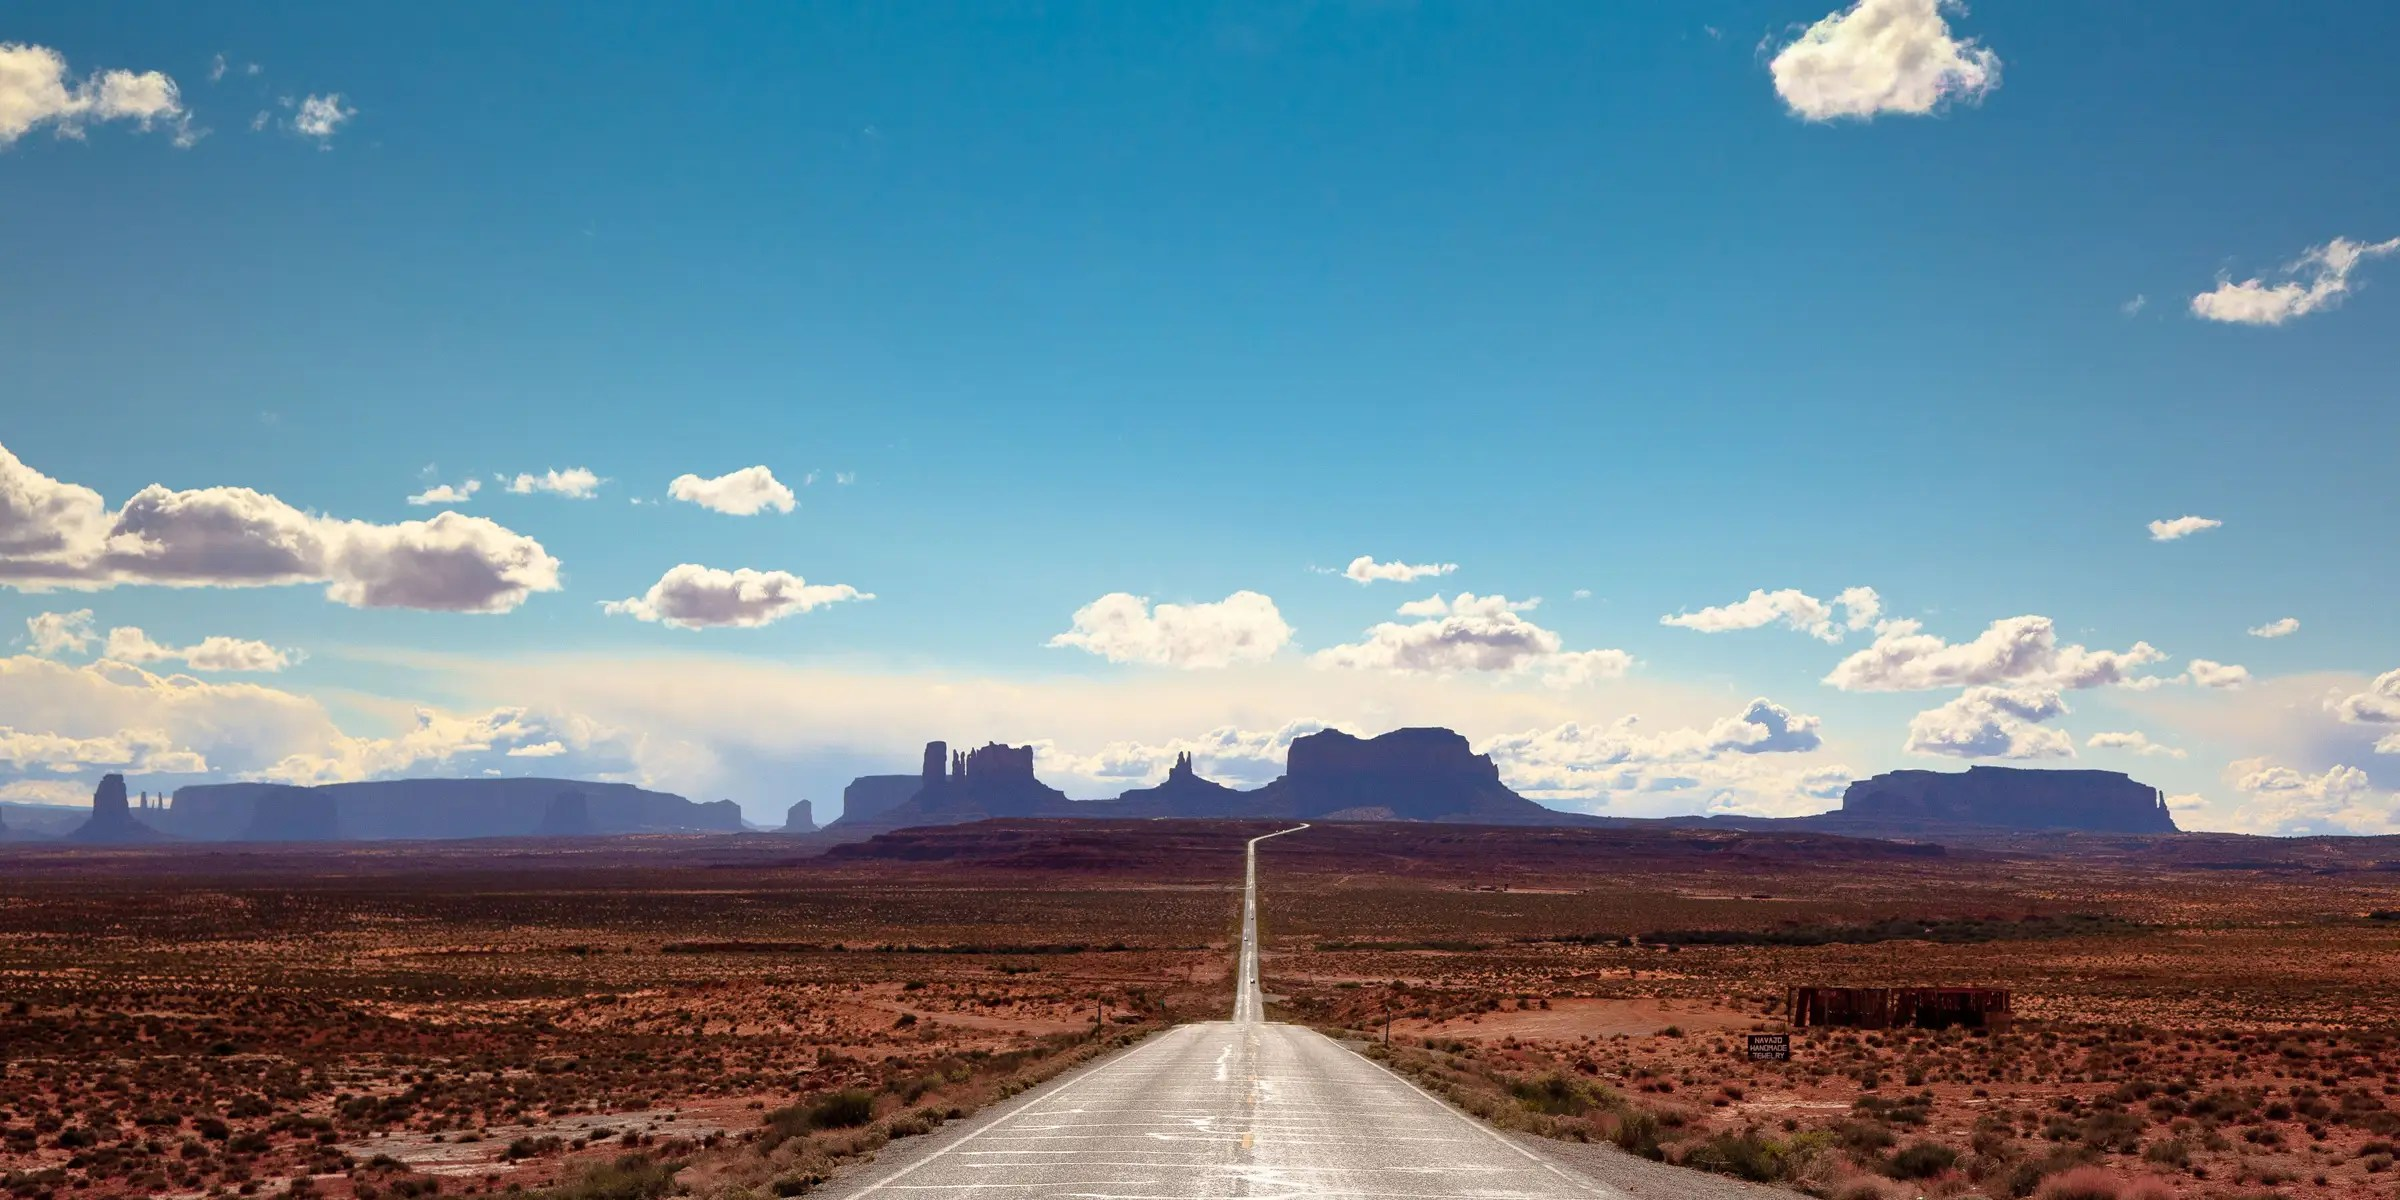 Scenic Byway 163 stretches from the Arizona border through Monument Valley in Utah. During the 45-mile drive, you'll be able to admire the beautiful red rocks and desert.